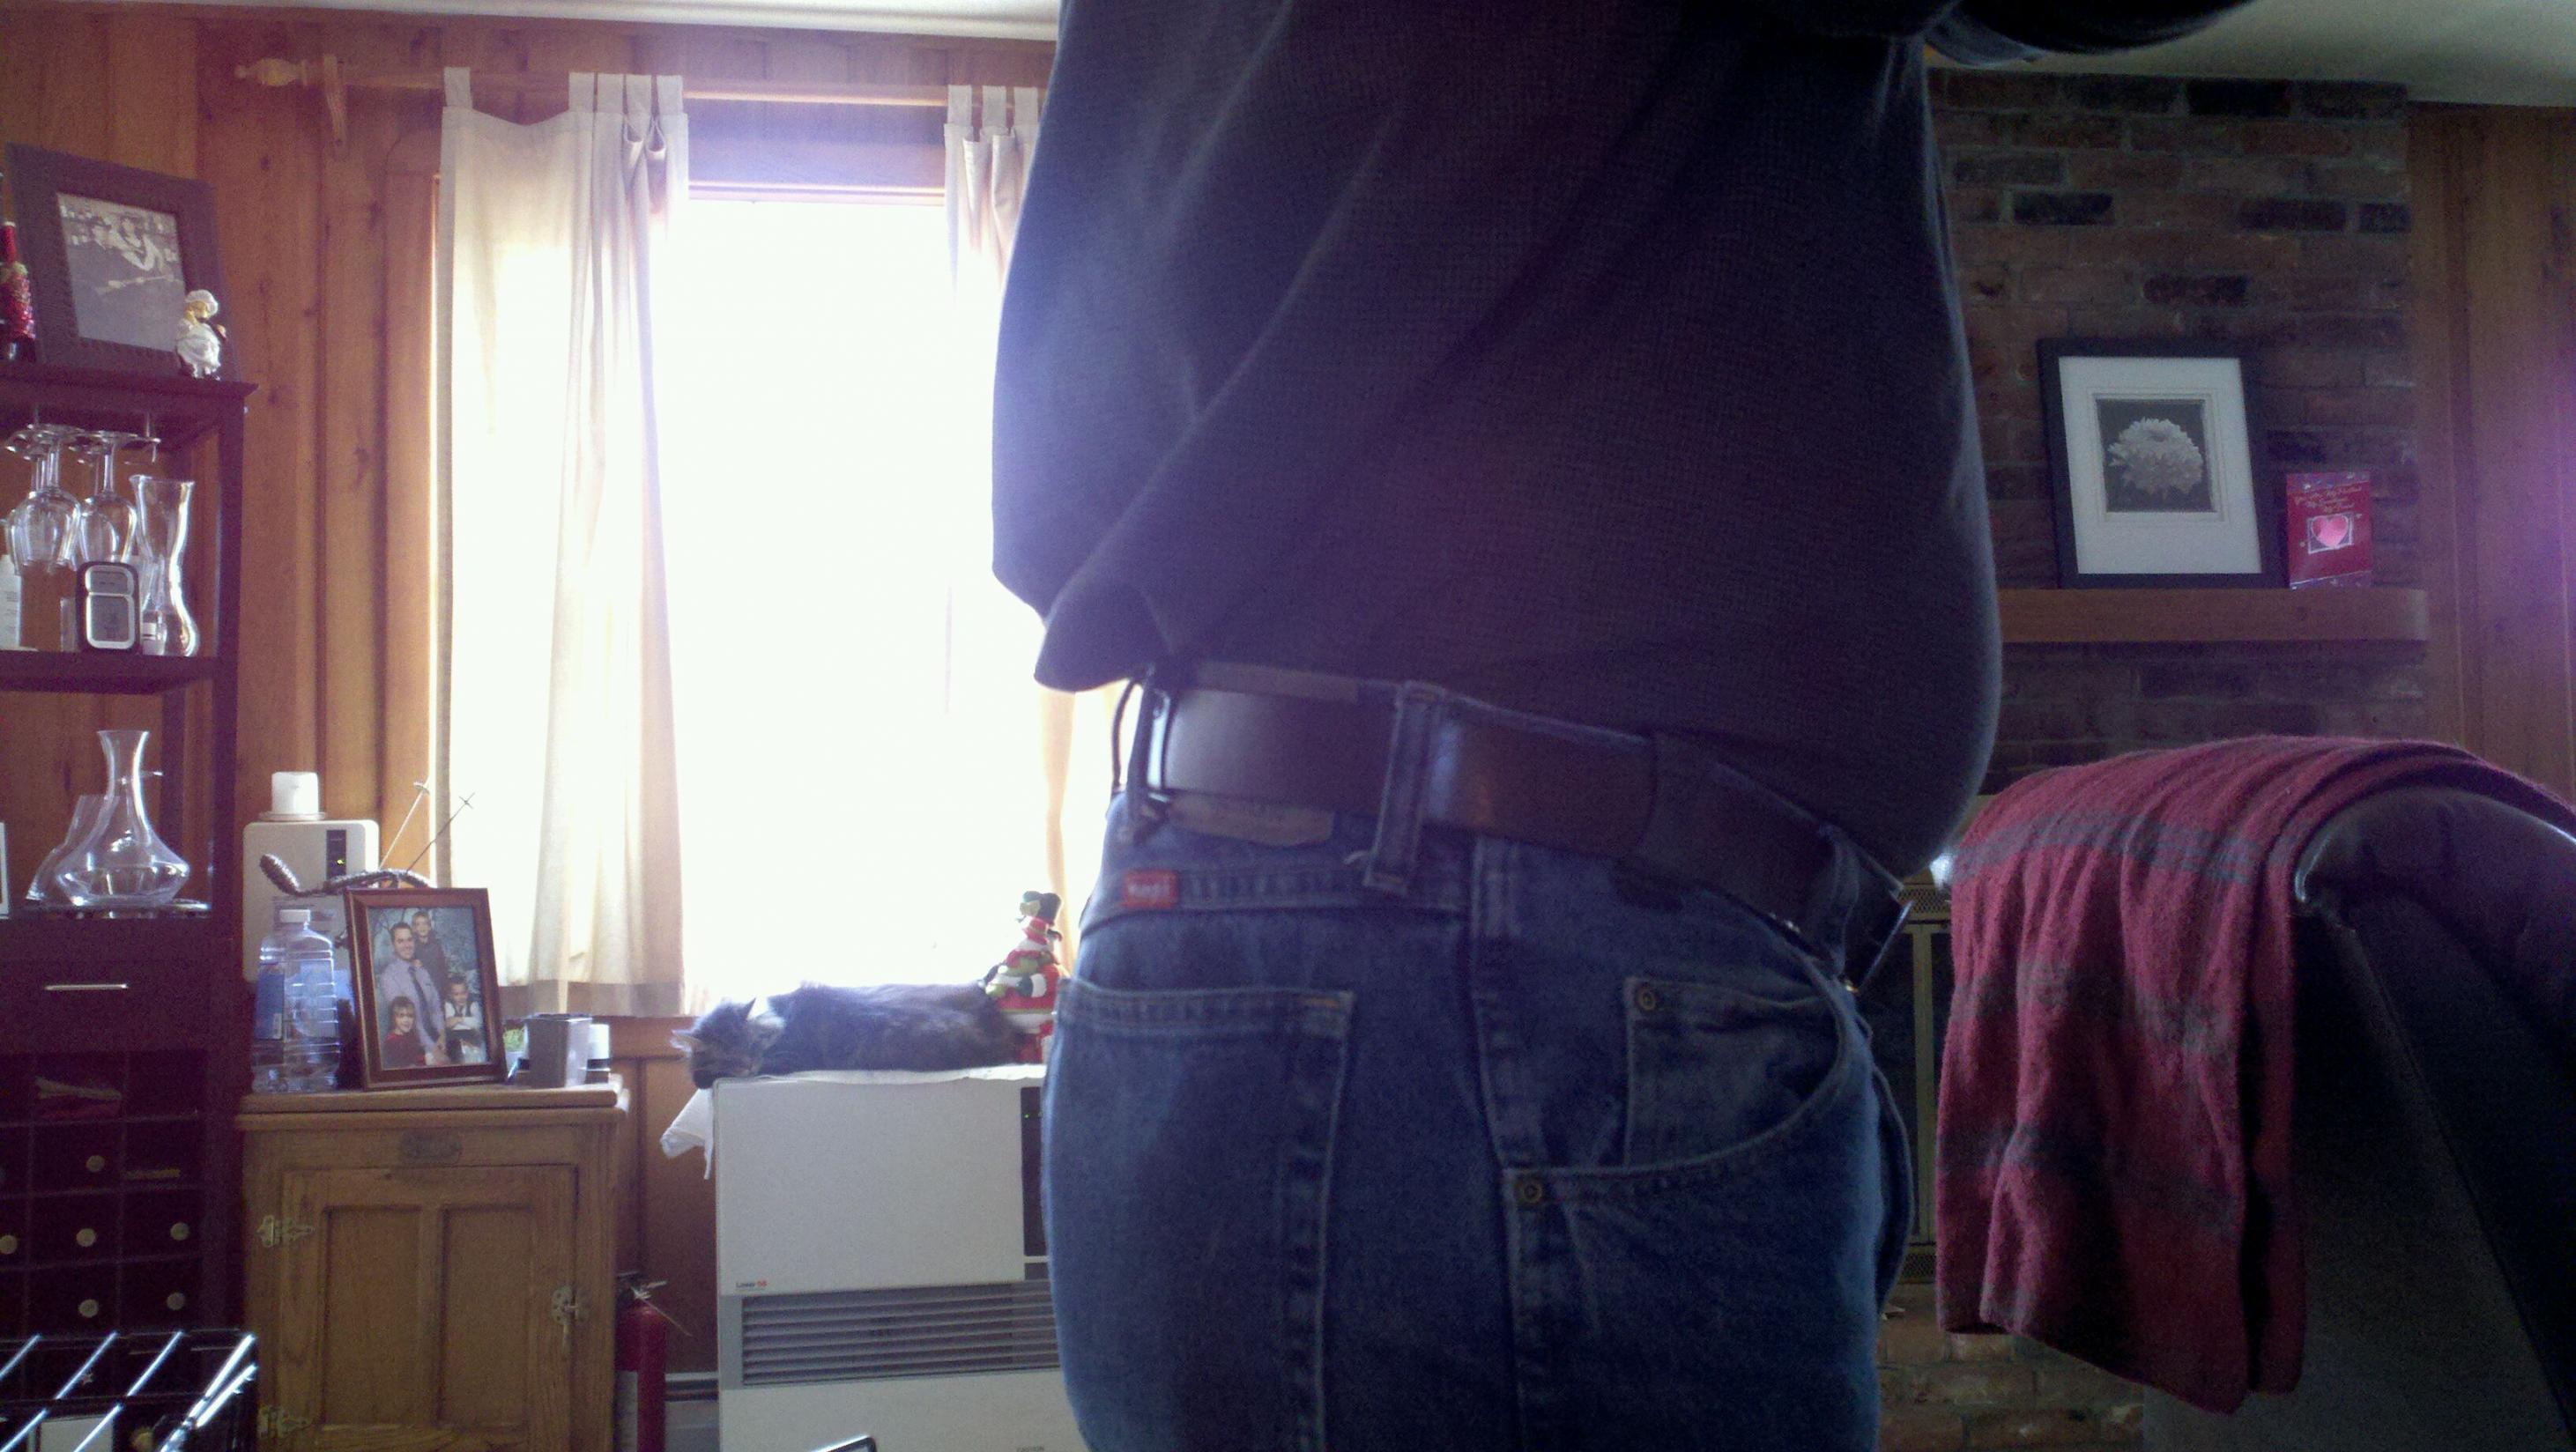 Let's See Your Pic's - How You Carry Concealed.-imagesequence00000003.jpg